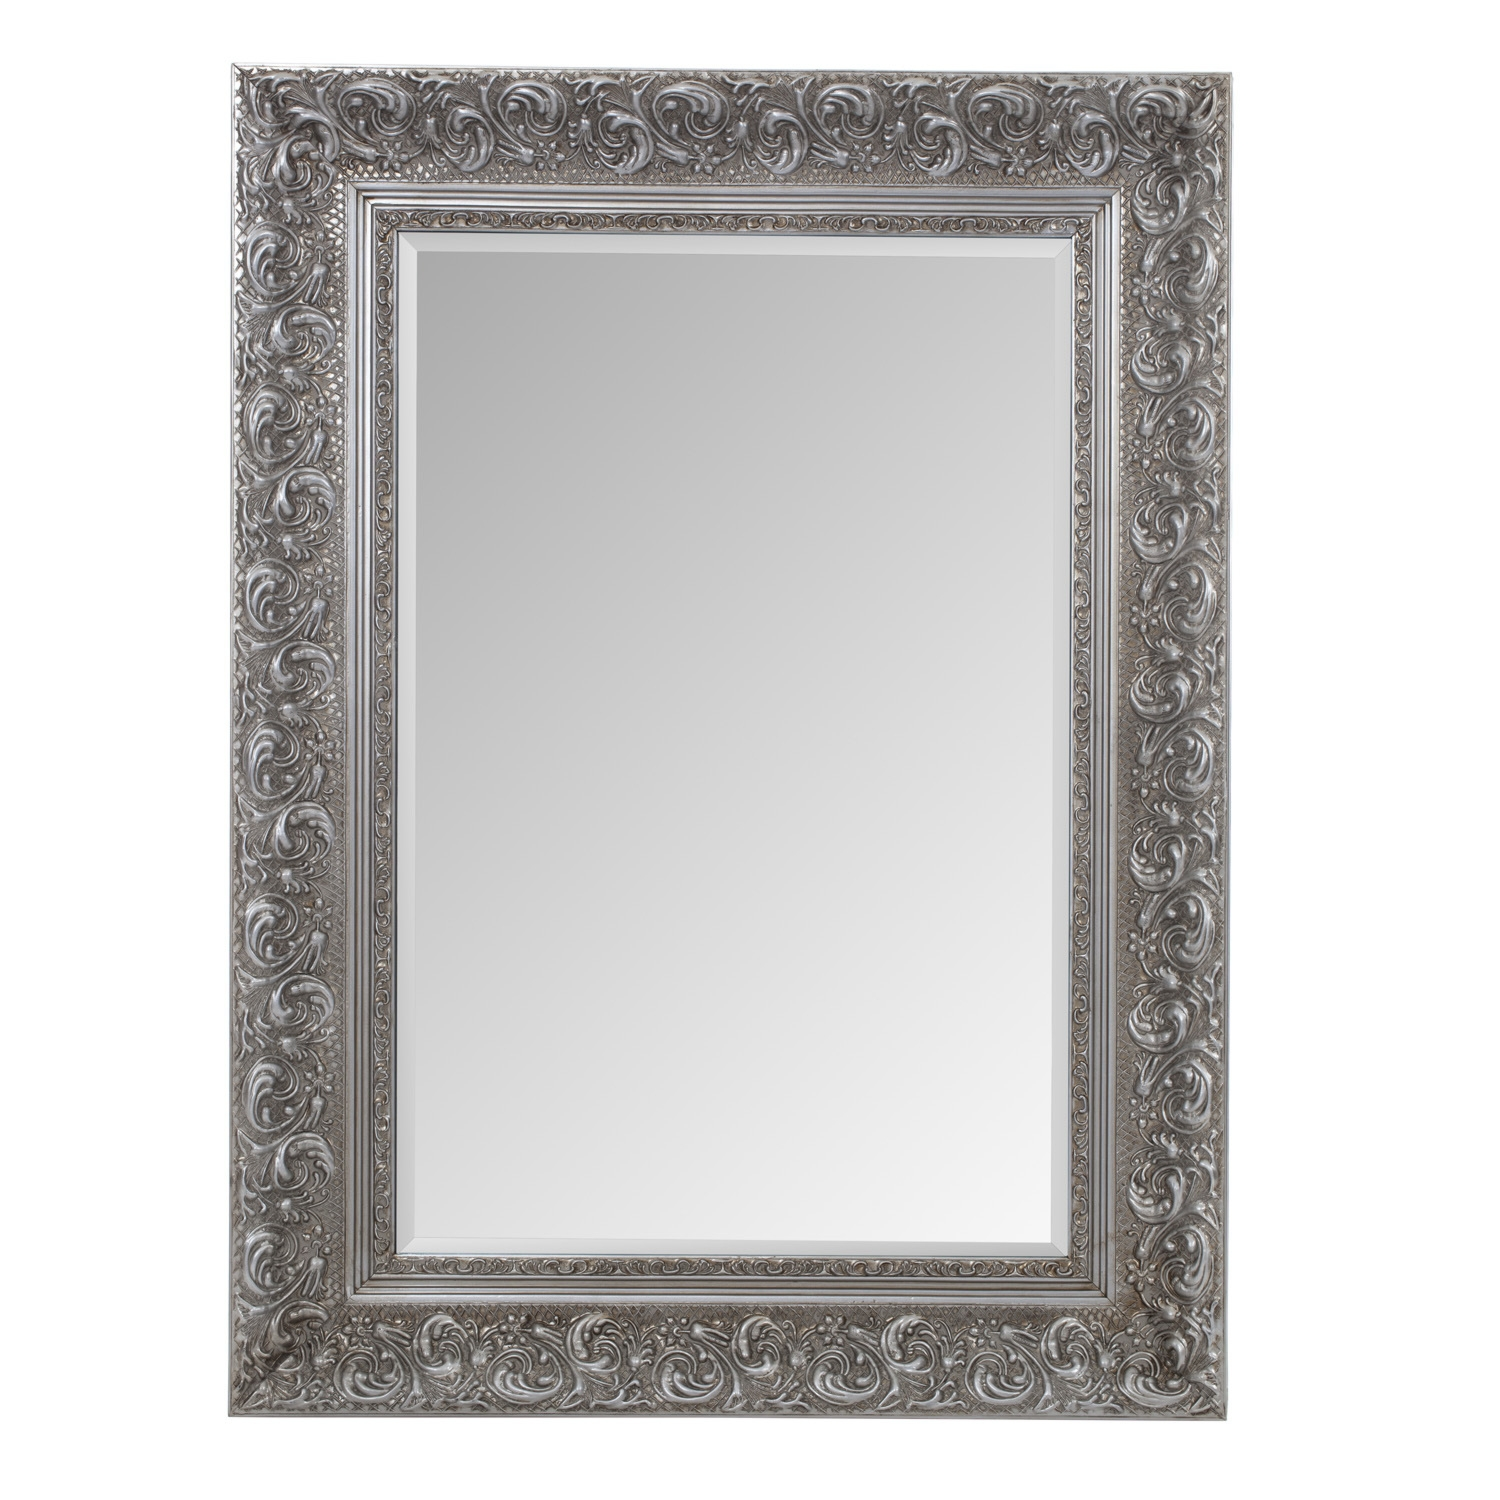 Antique Ornate Mirror Silver Intended For Silver Ornate Mirror (Image 4 of 15)